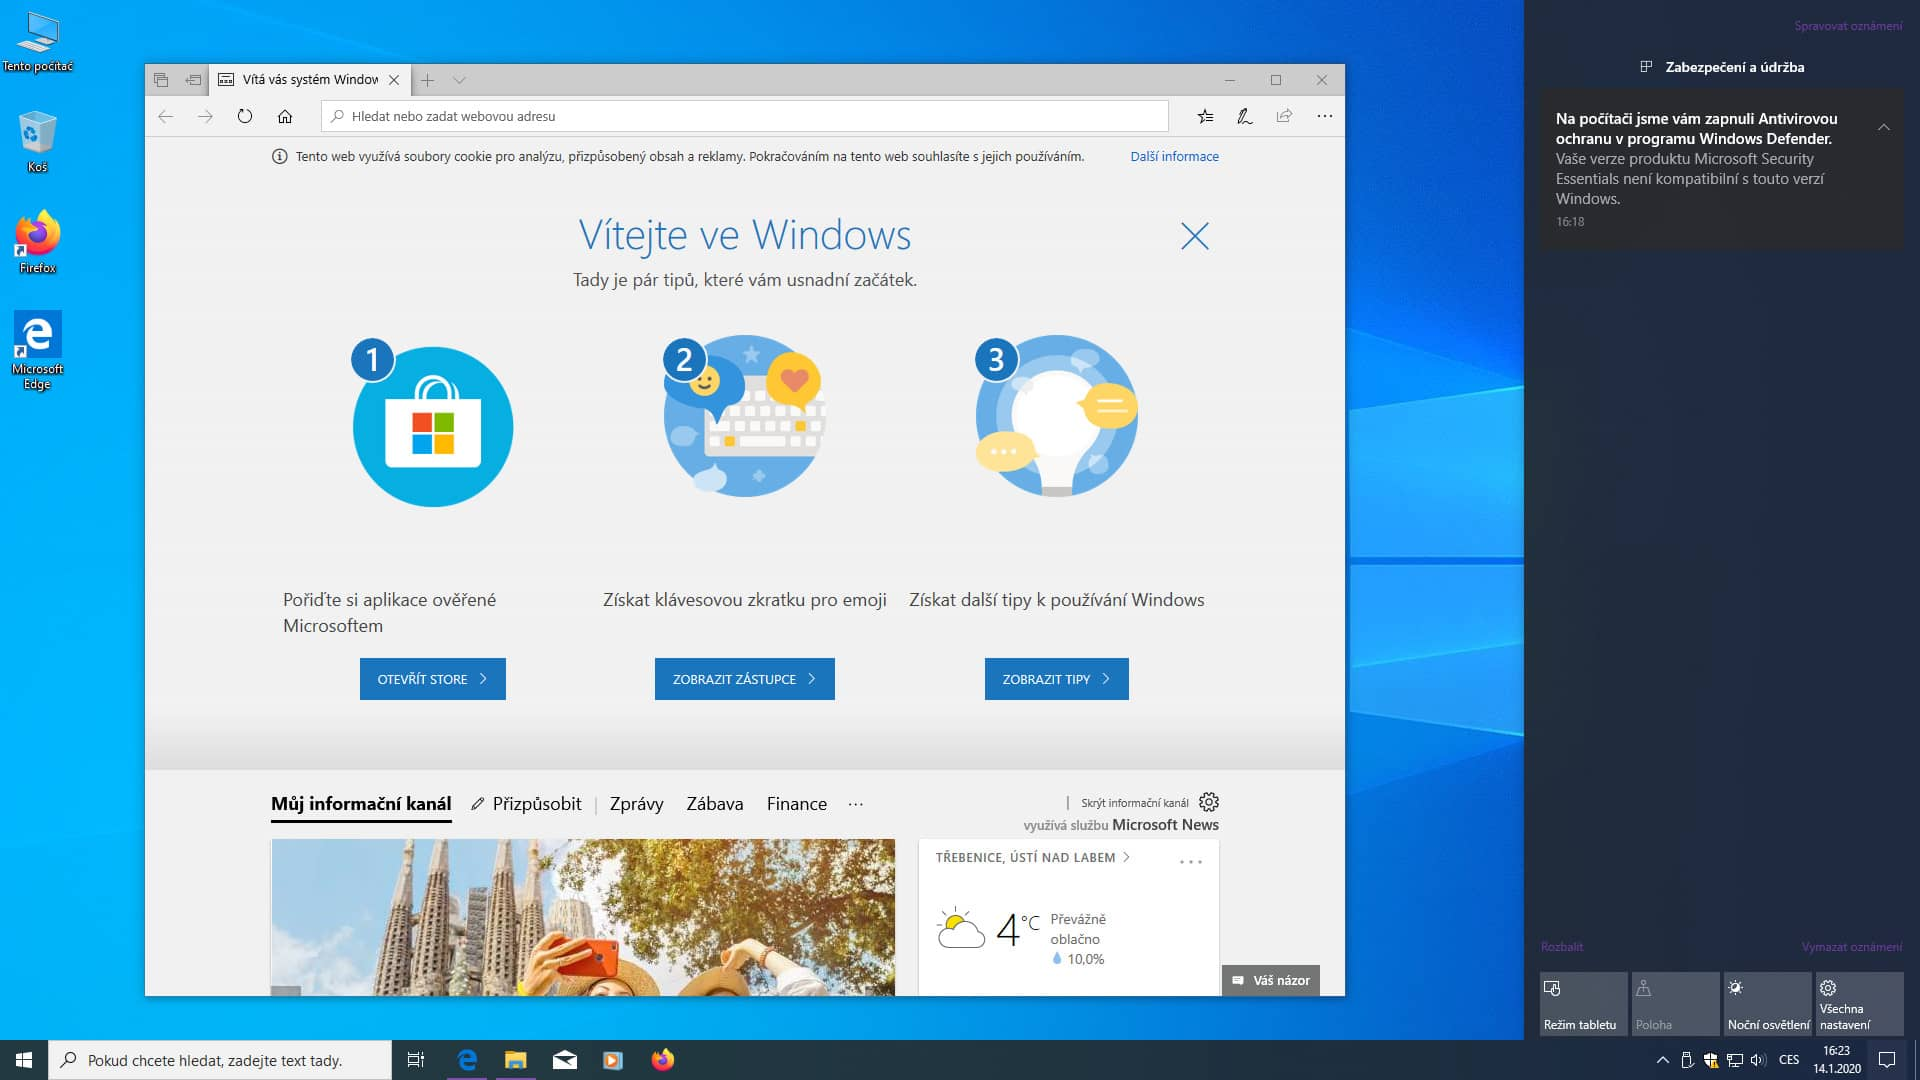 windows 7 bezplatny upgrade windows 10 12